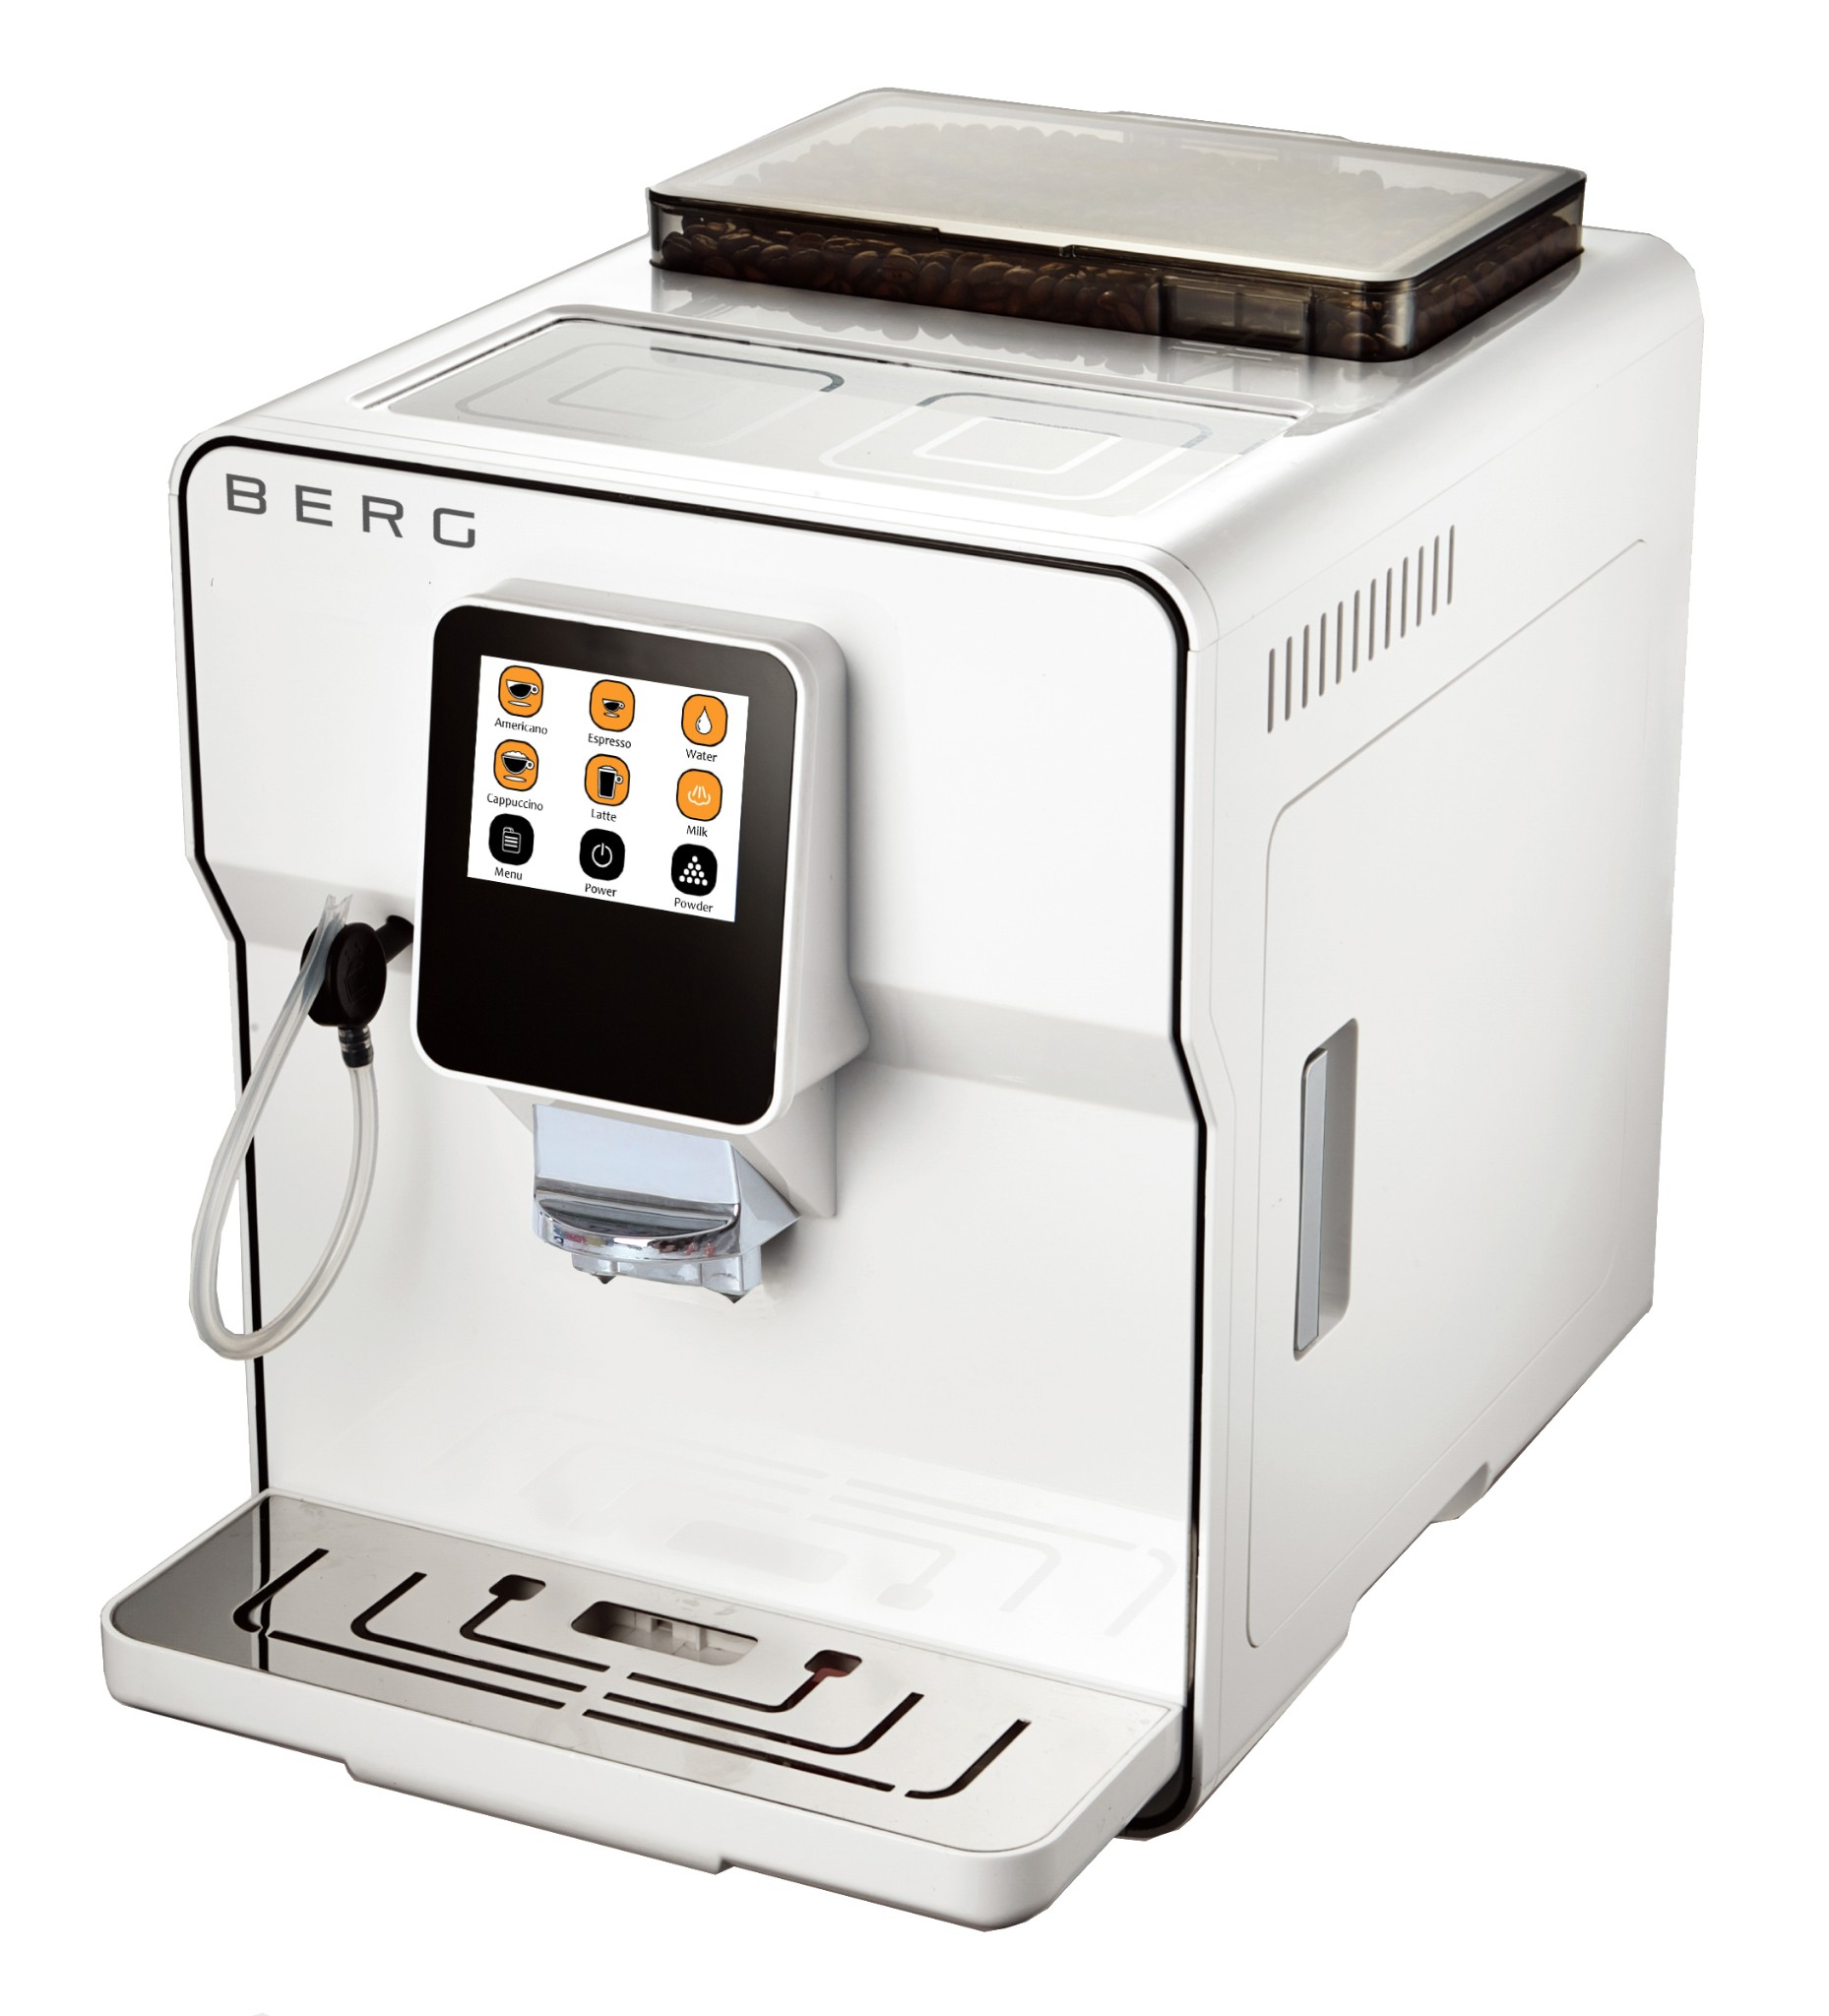 Mayer Automatic Bean To Cup Coffee Maker : BERG Toccare Uno - Automatic One Touch Bean to Cup Coffee Machine